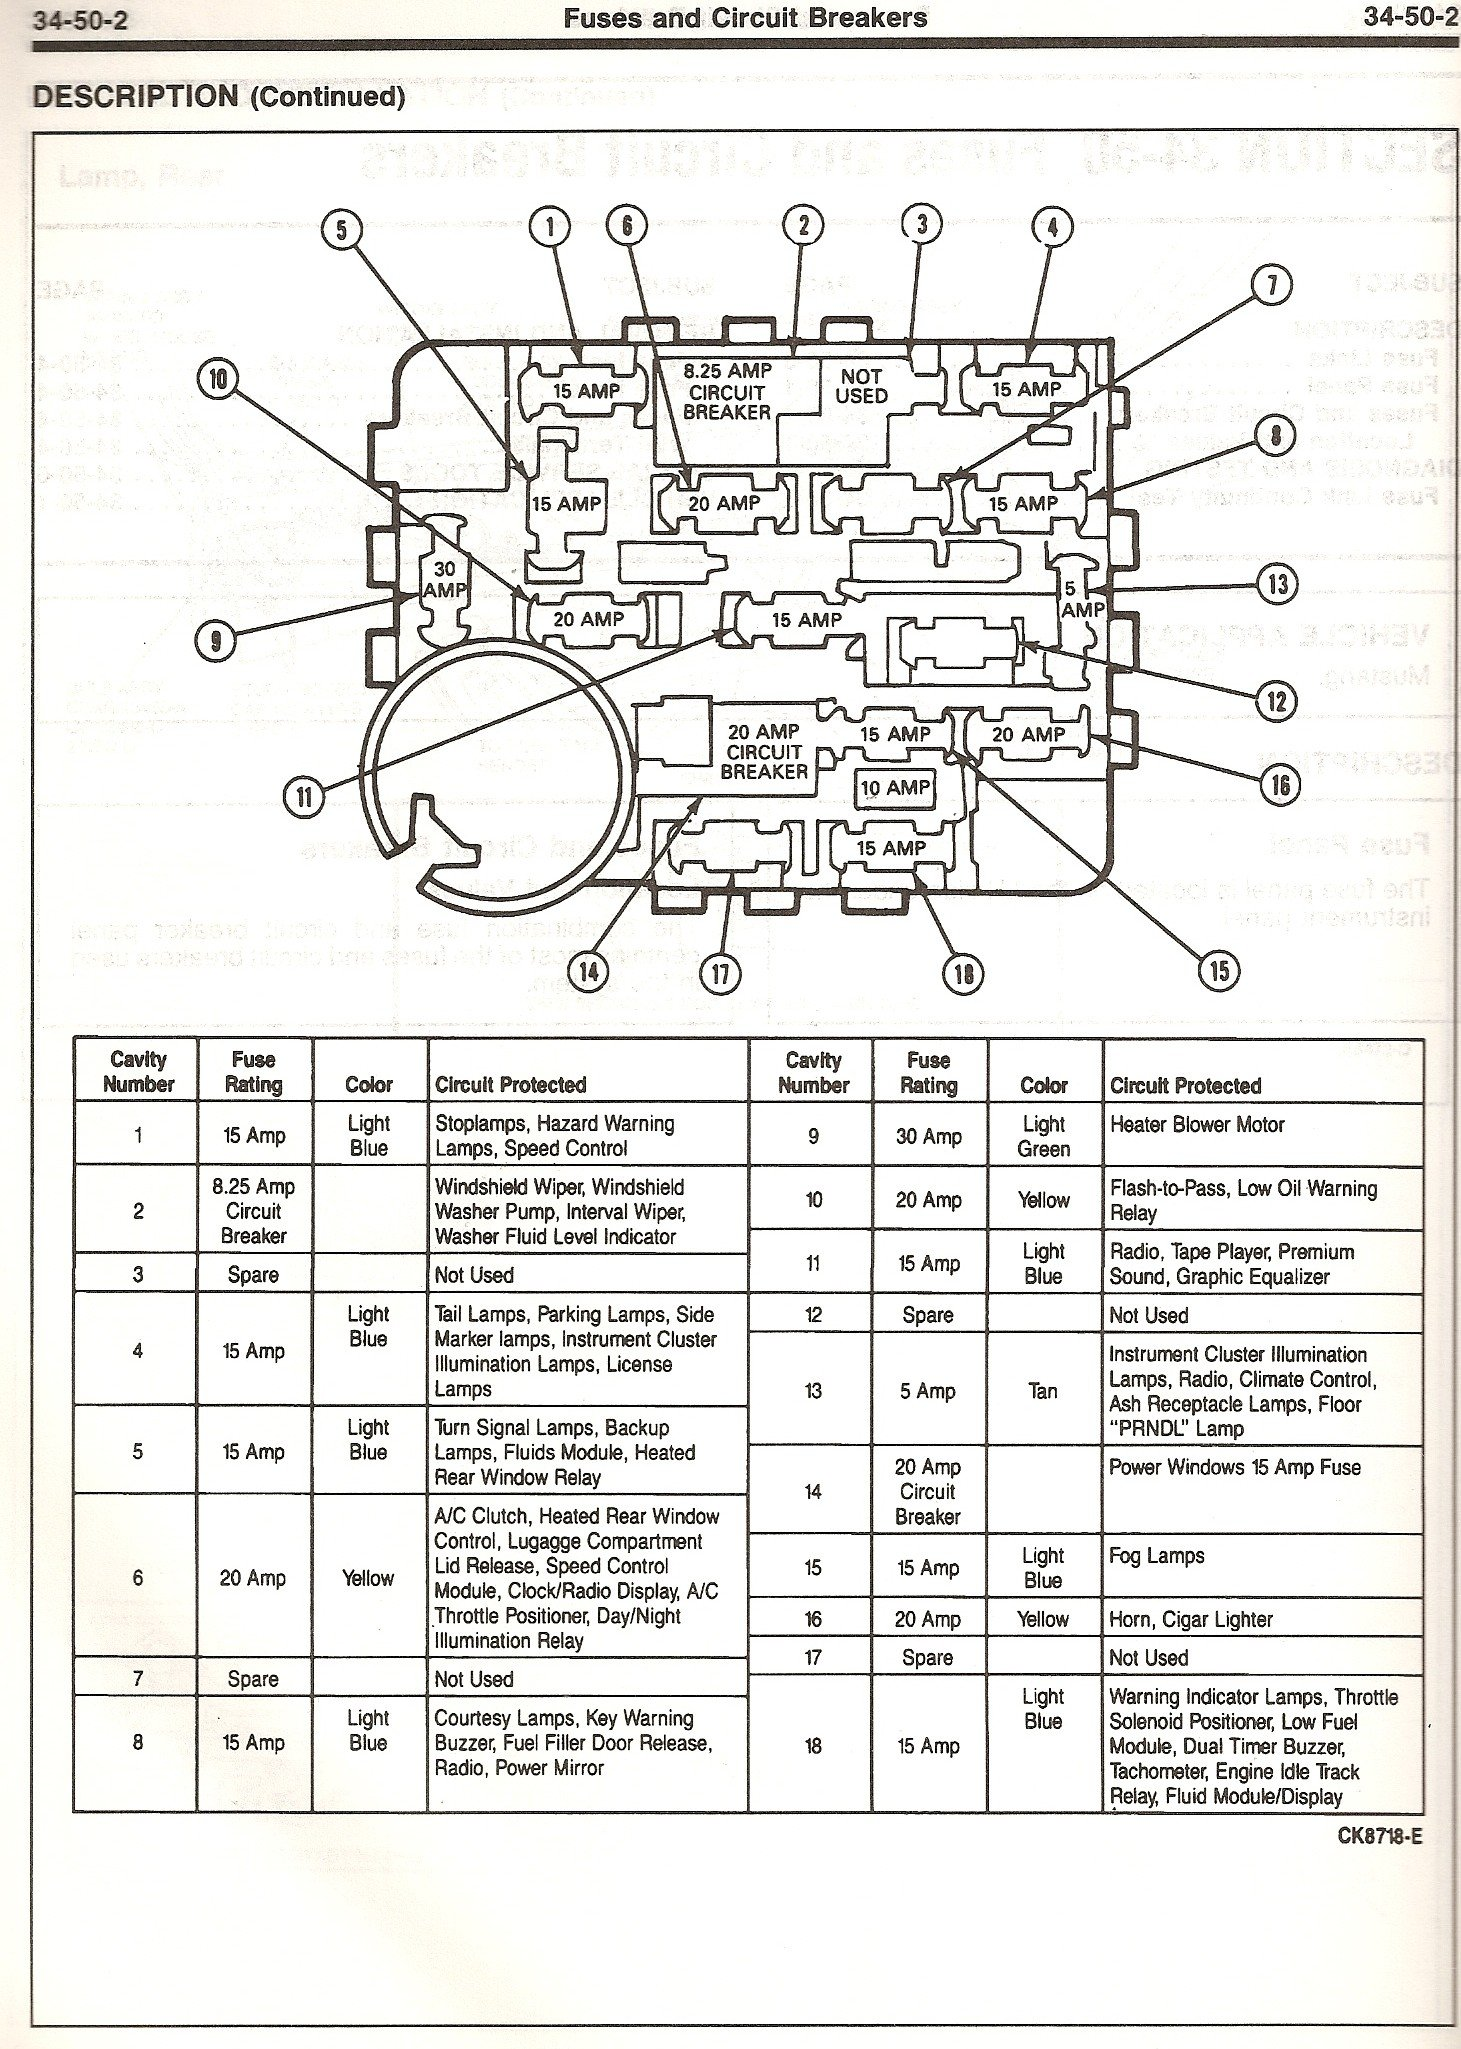 fuse panel diagram  gt mustangforumscom